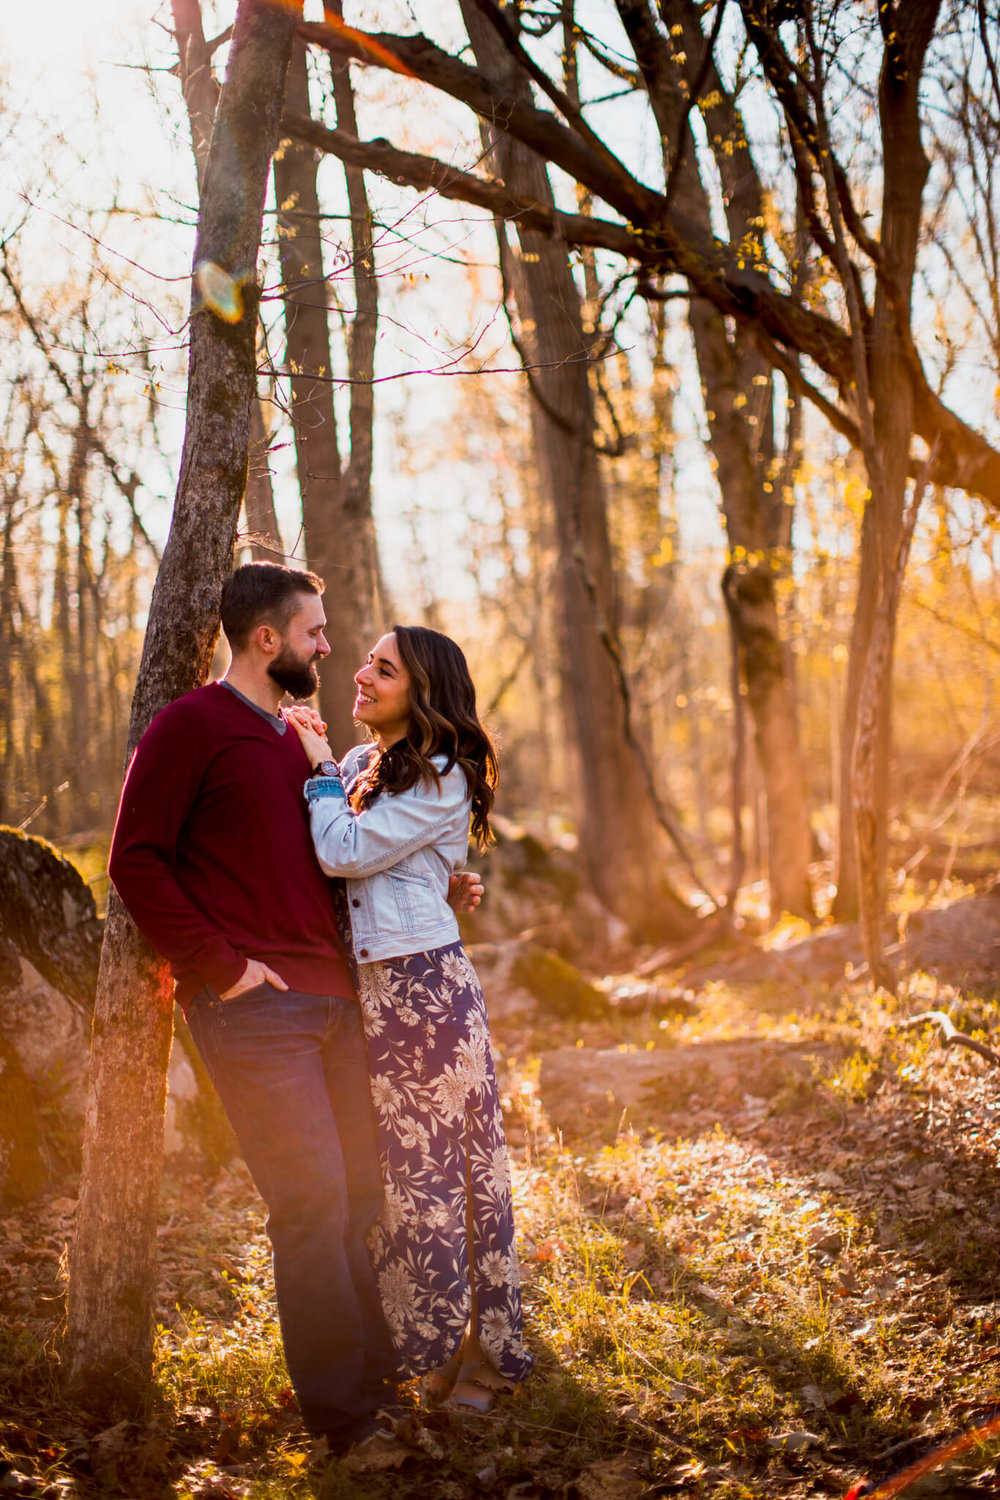 Lisa Jonathan Great Falls Park Virginia Engagement-170.jpg